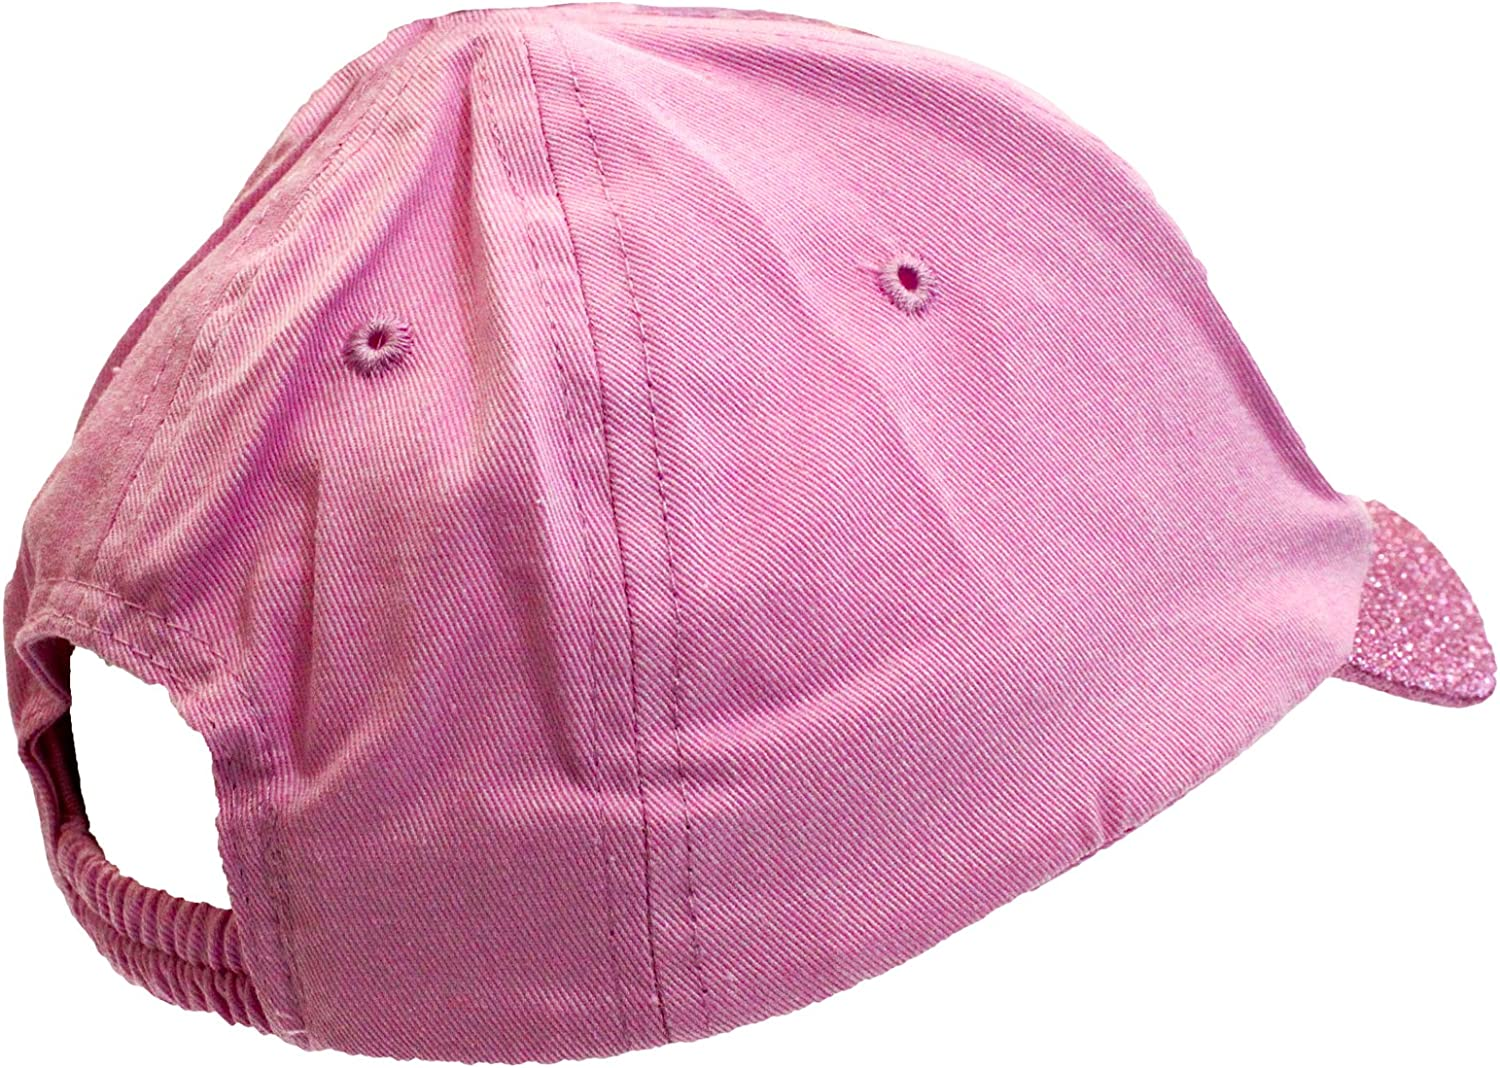 Official Licensed Disney Princess Baseball Cap Hat Dare to Dream Pink Age 1-3 Years